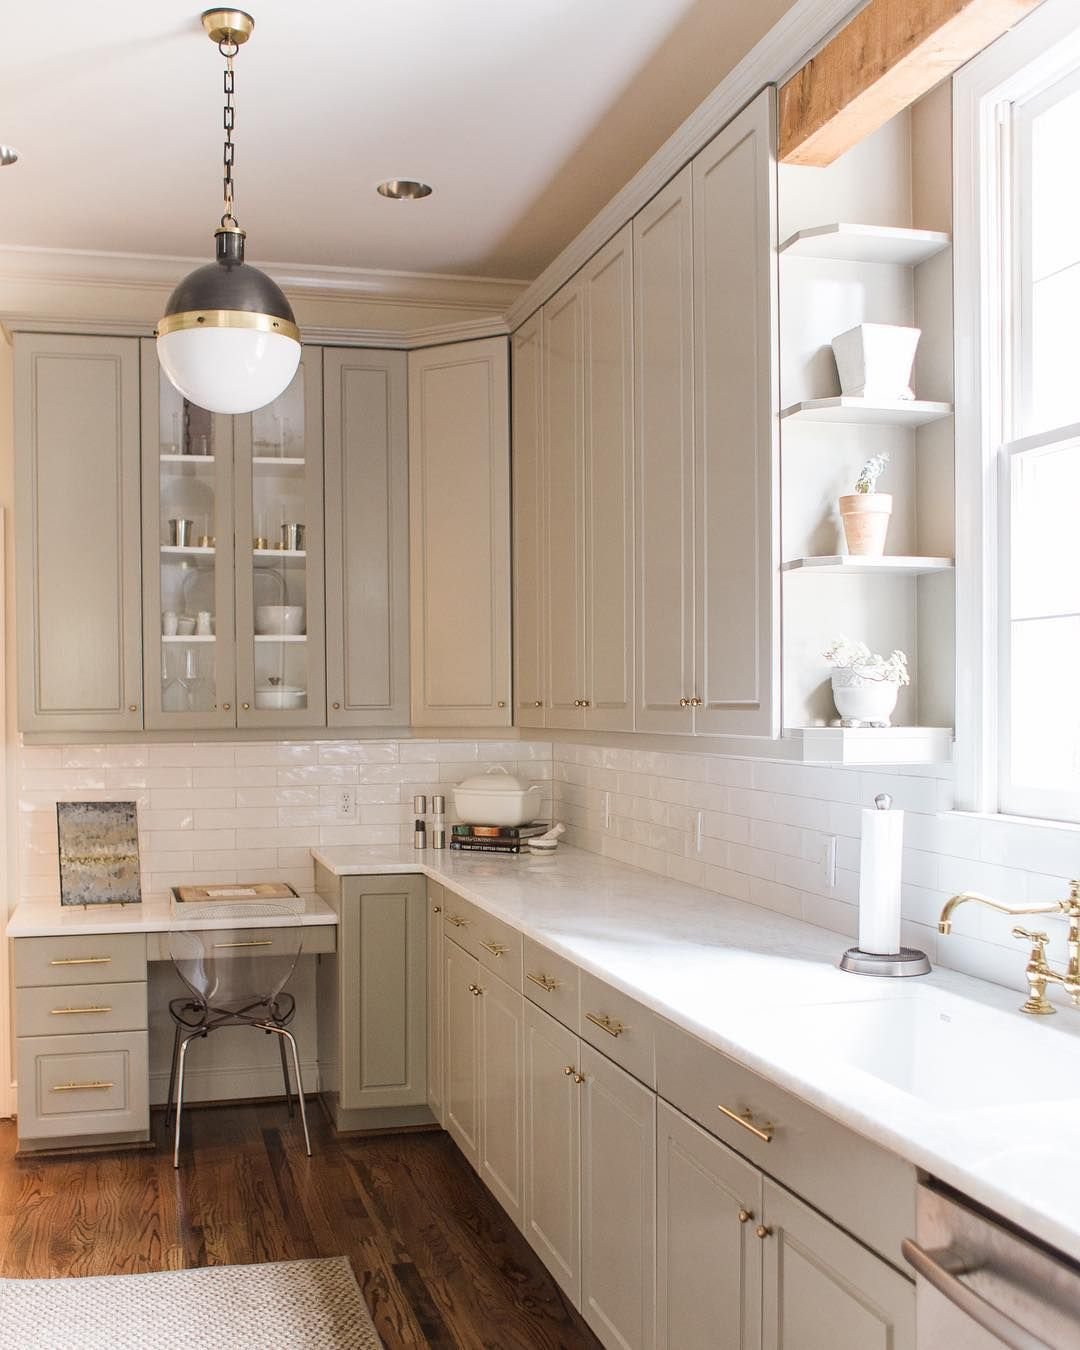 Mystery White Dolomite Countertops And Benjaminmoore S Sandy Hook Gray Cabinets Grey Cabinets Beautiful Kitchens Kitchen